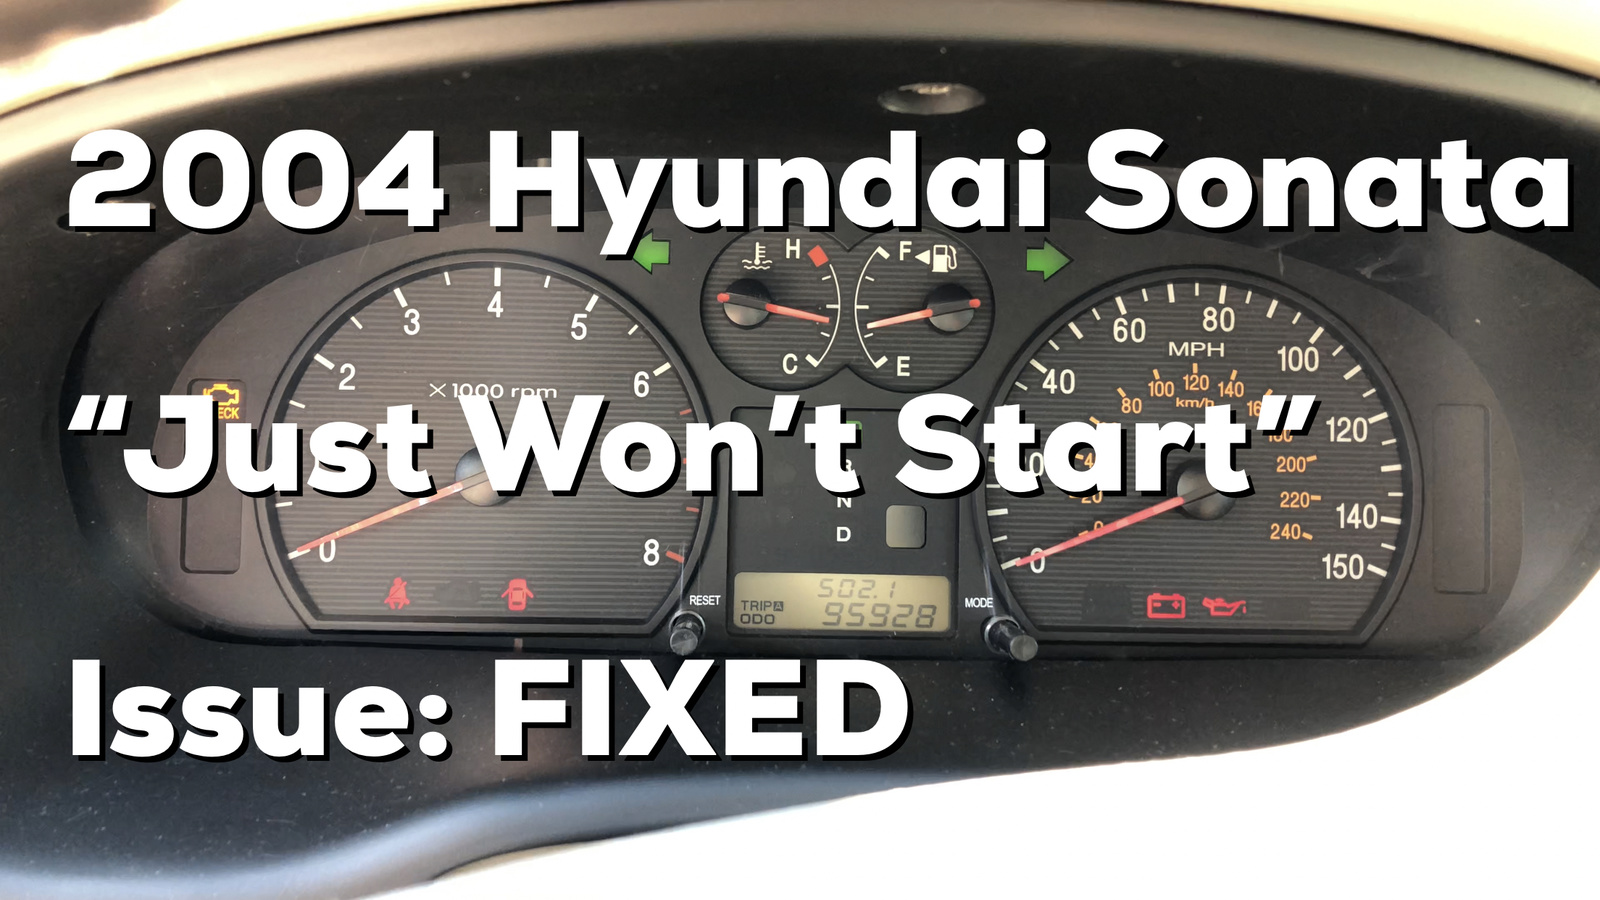 2000 hyundai elantra engine diagram 93 mustang radio wiring sonata questions - car won't do anything when you try to start it, happens ...